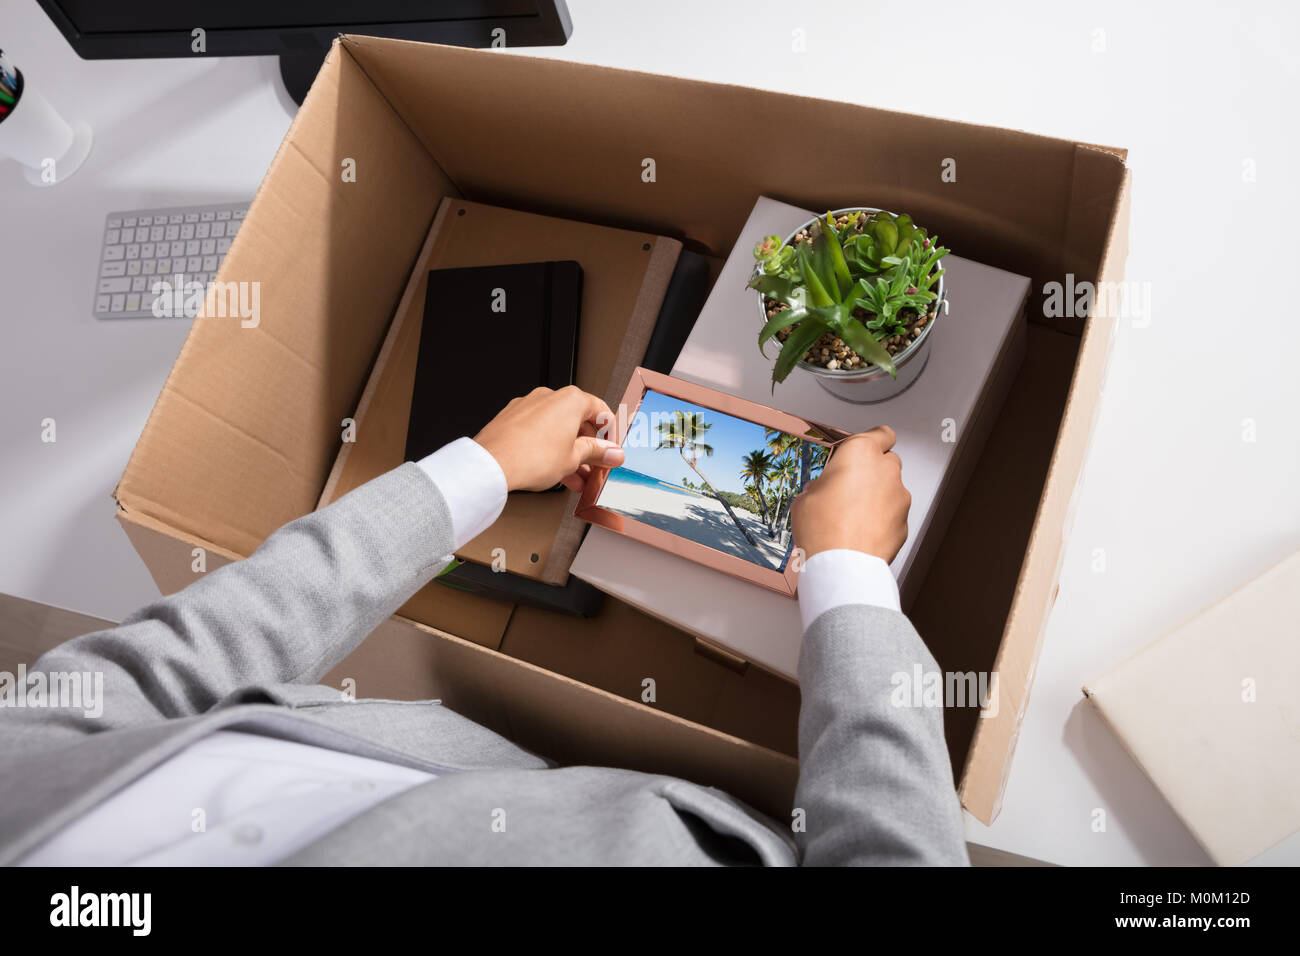 Close-up Of A Businesswoman Packing Picture Frame In Cardboard Box At Workplace - Stock Image